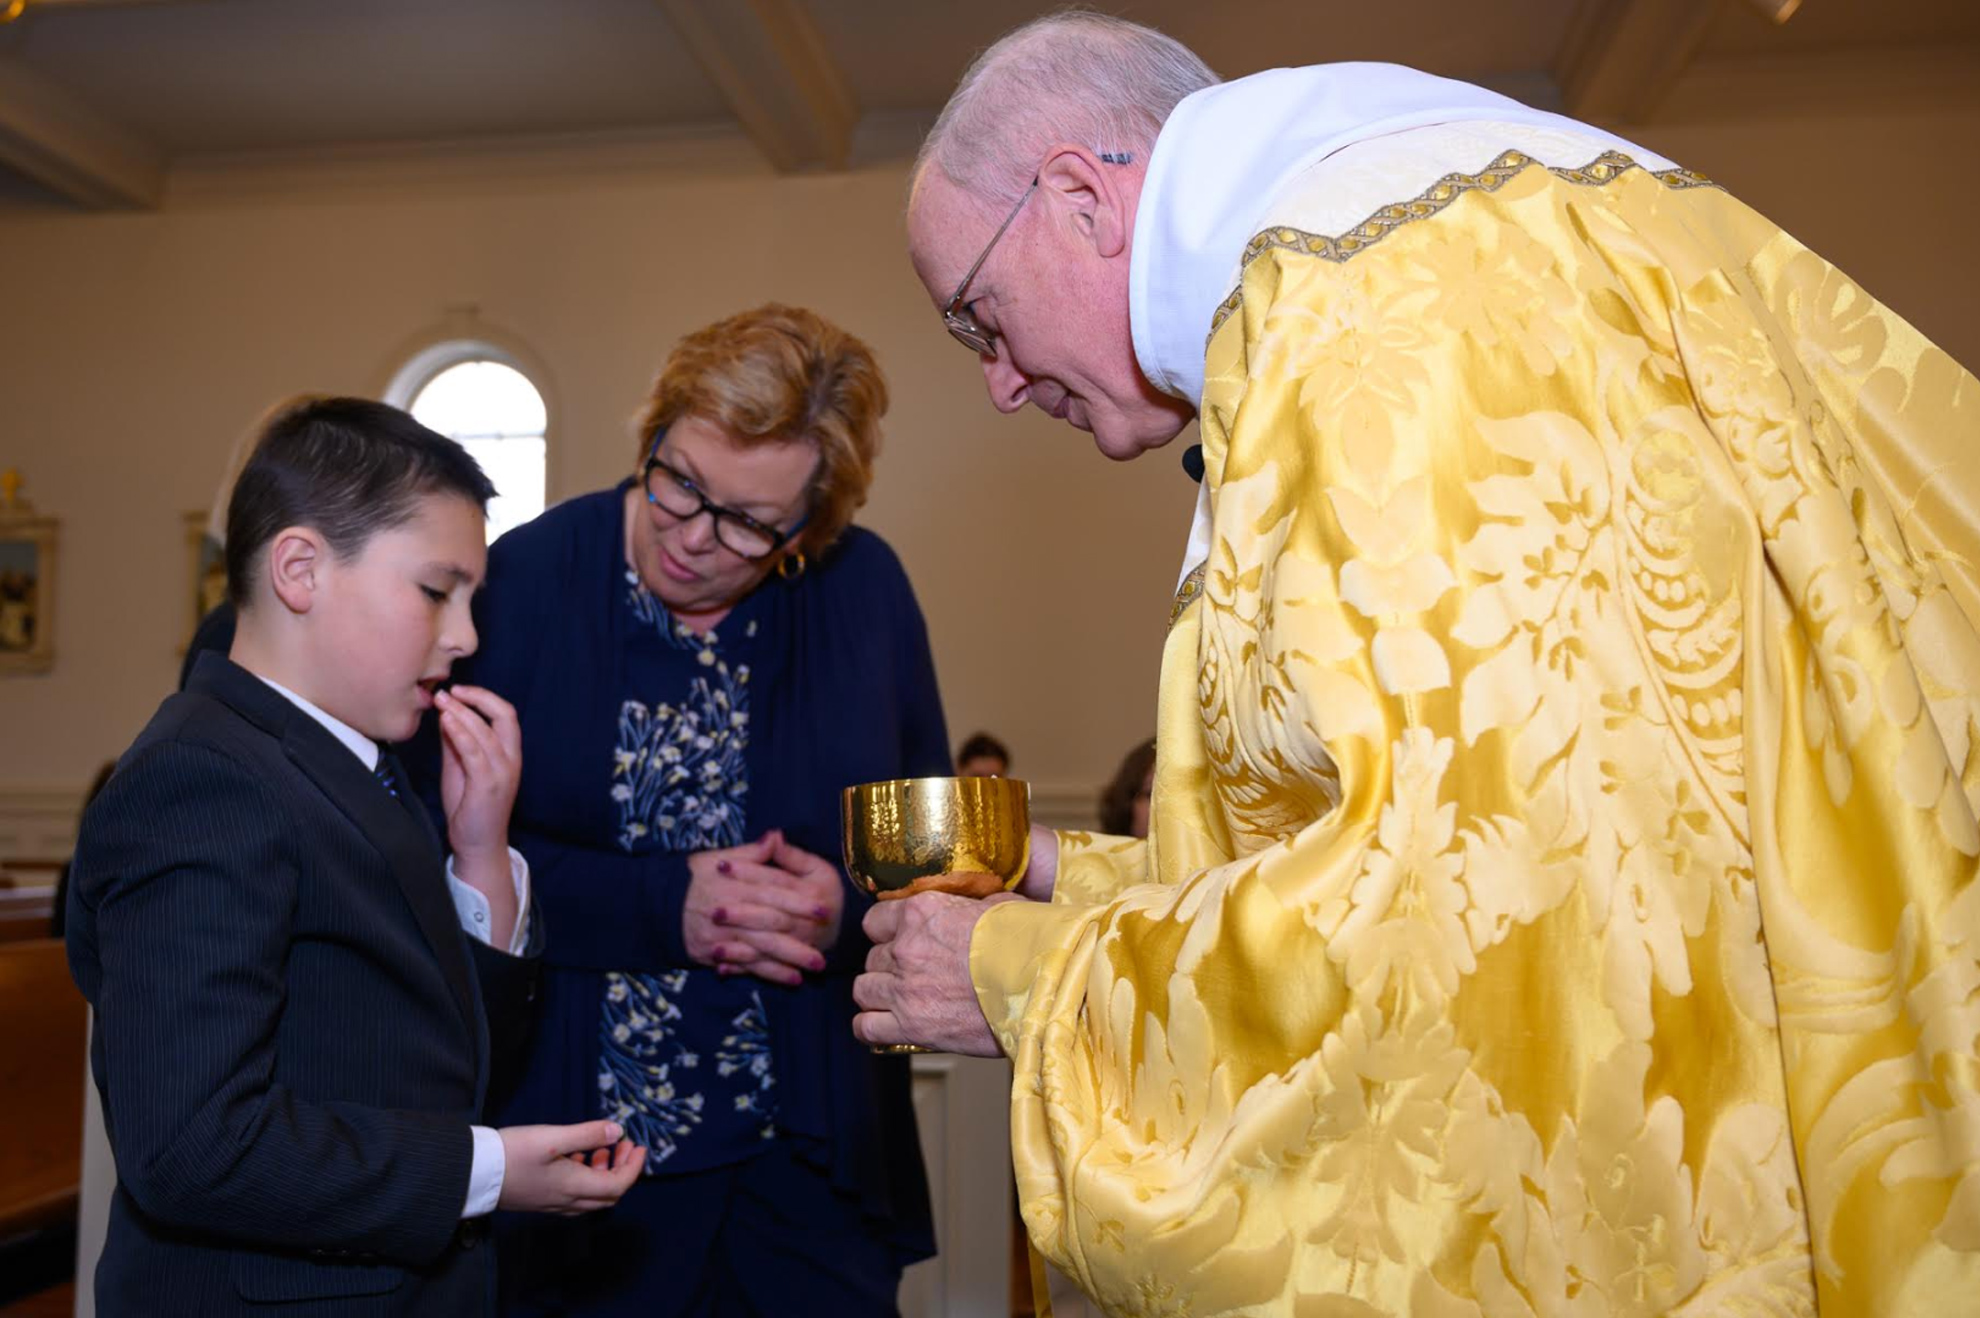 Pope To Meet With Autistic Kids To End >> Autism The Sacraments St Peter S Chuch